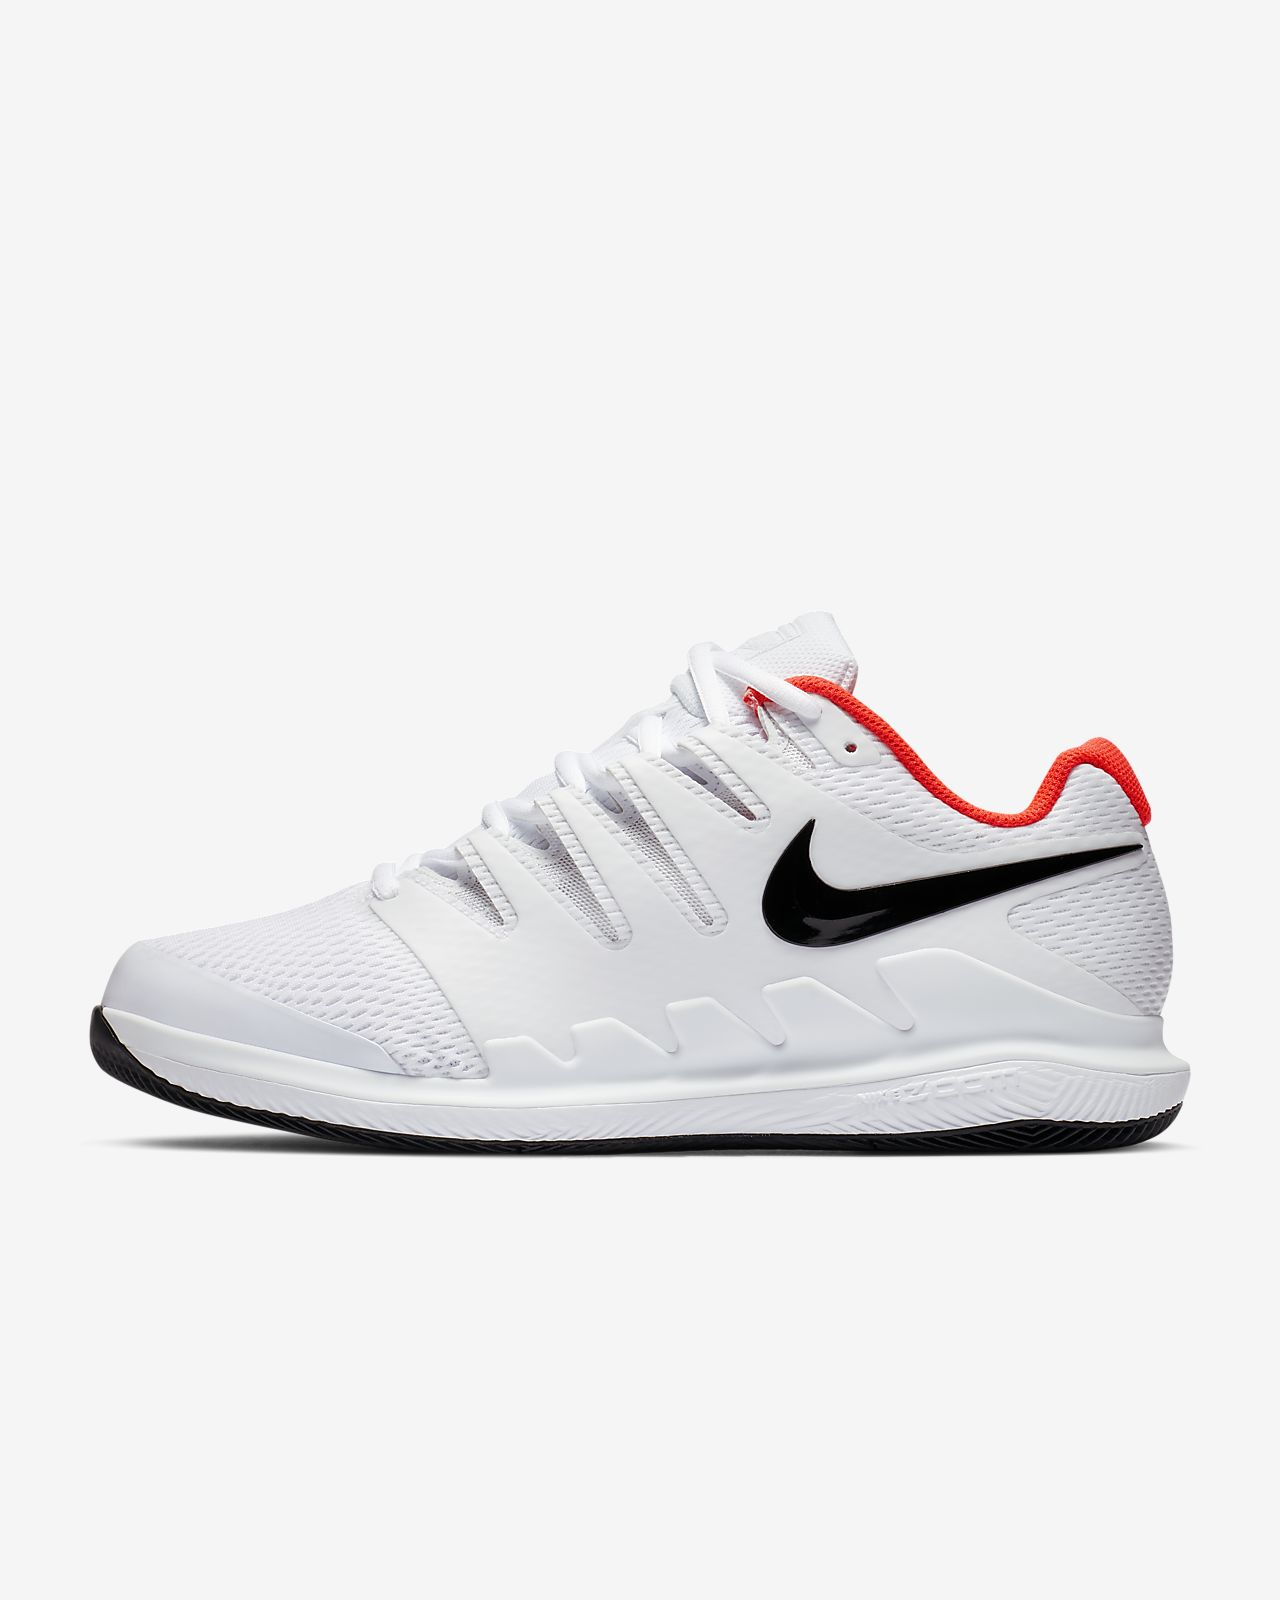 bad8873850fb1 Nike Air Zoom Vapor X (Wide) Men's Tennis Shoe. Nike.com